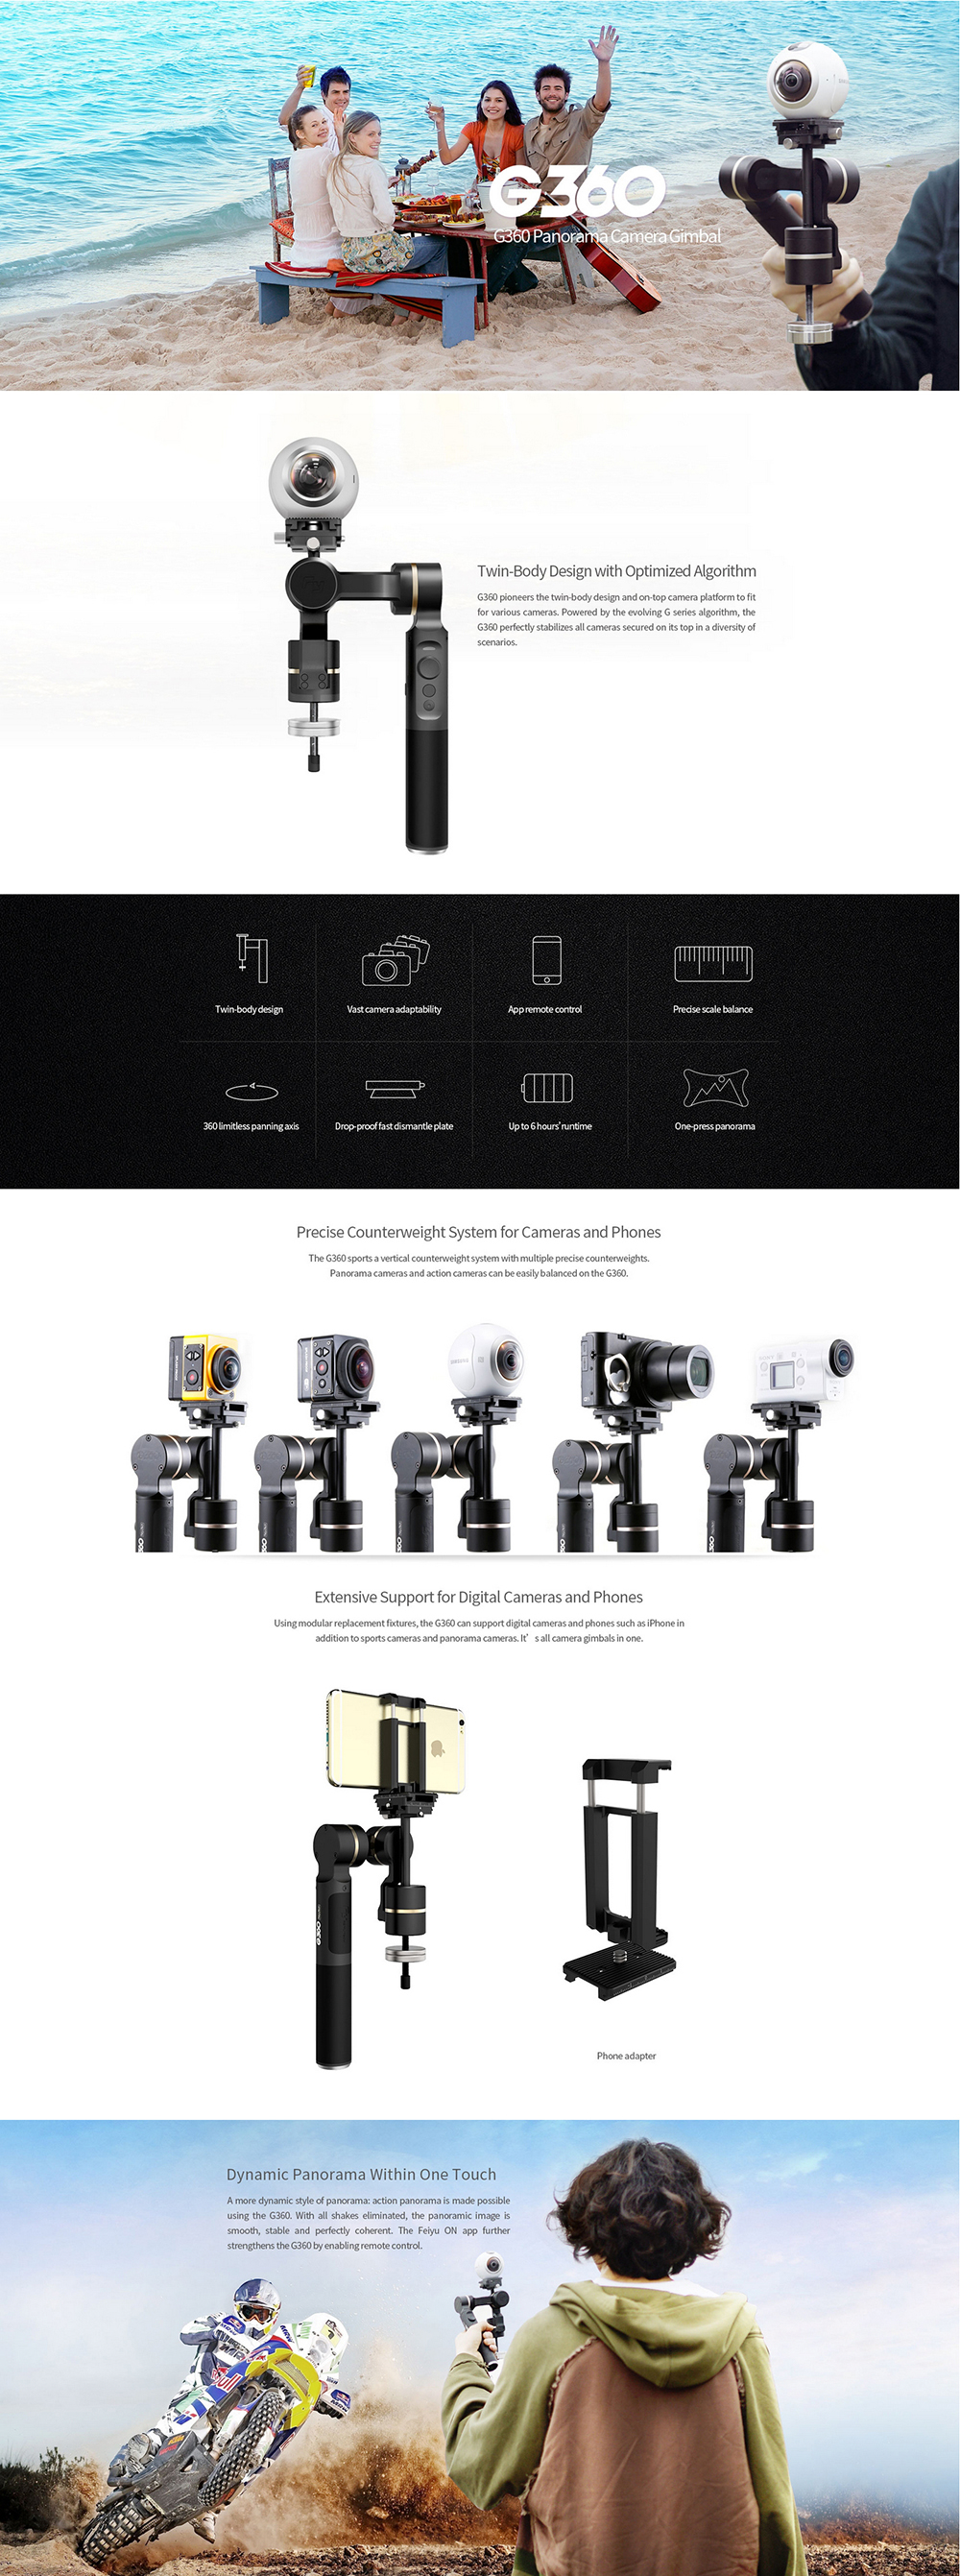 Feiyu G360 Handheld Gimbal Stabilizer video 3-axis steadicam for iPhone  Sumsung HuaWei Gopro 360 panoramic camera